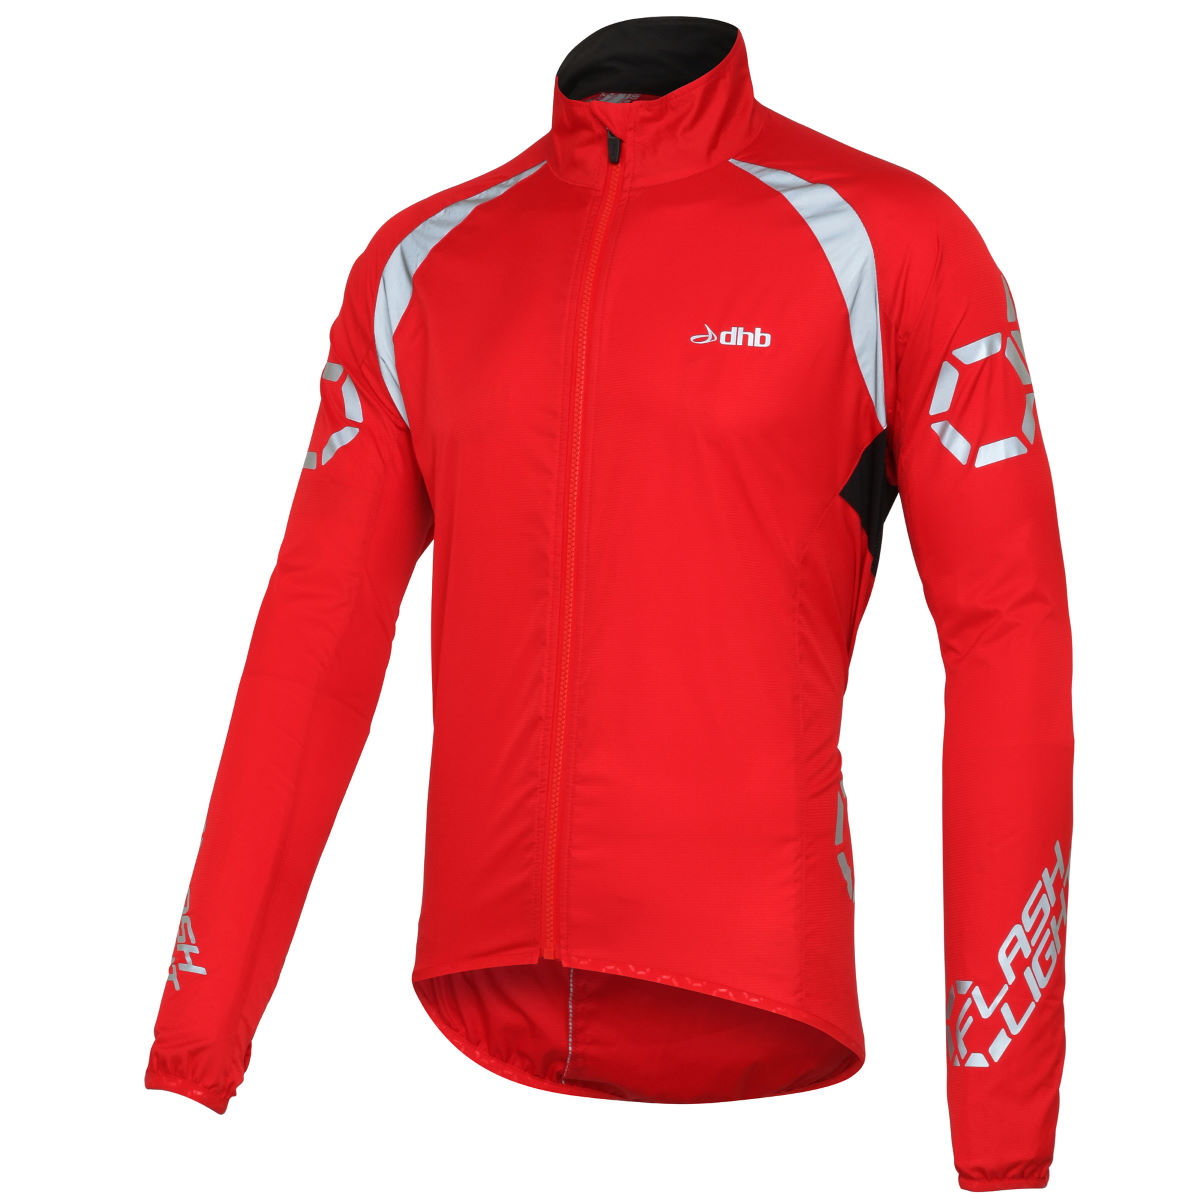 Veste dhb Flashlight (coupe-vent) - M Rouge Coupe-vents vélo